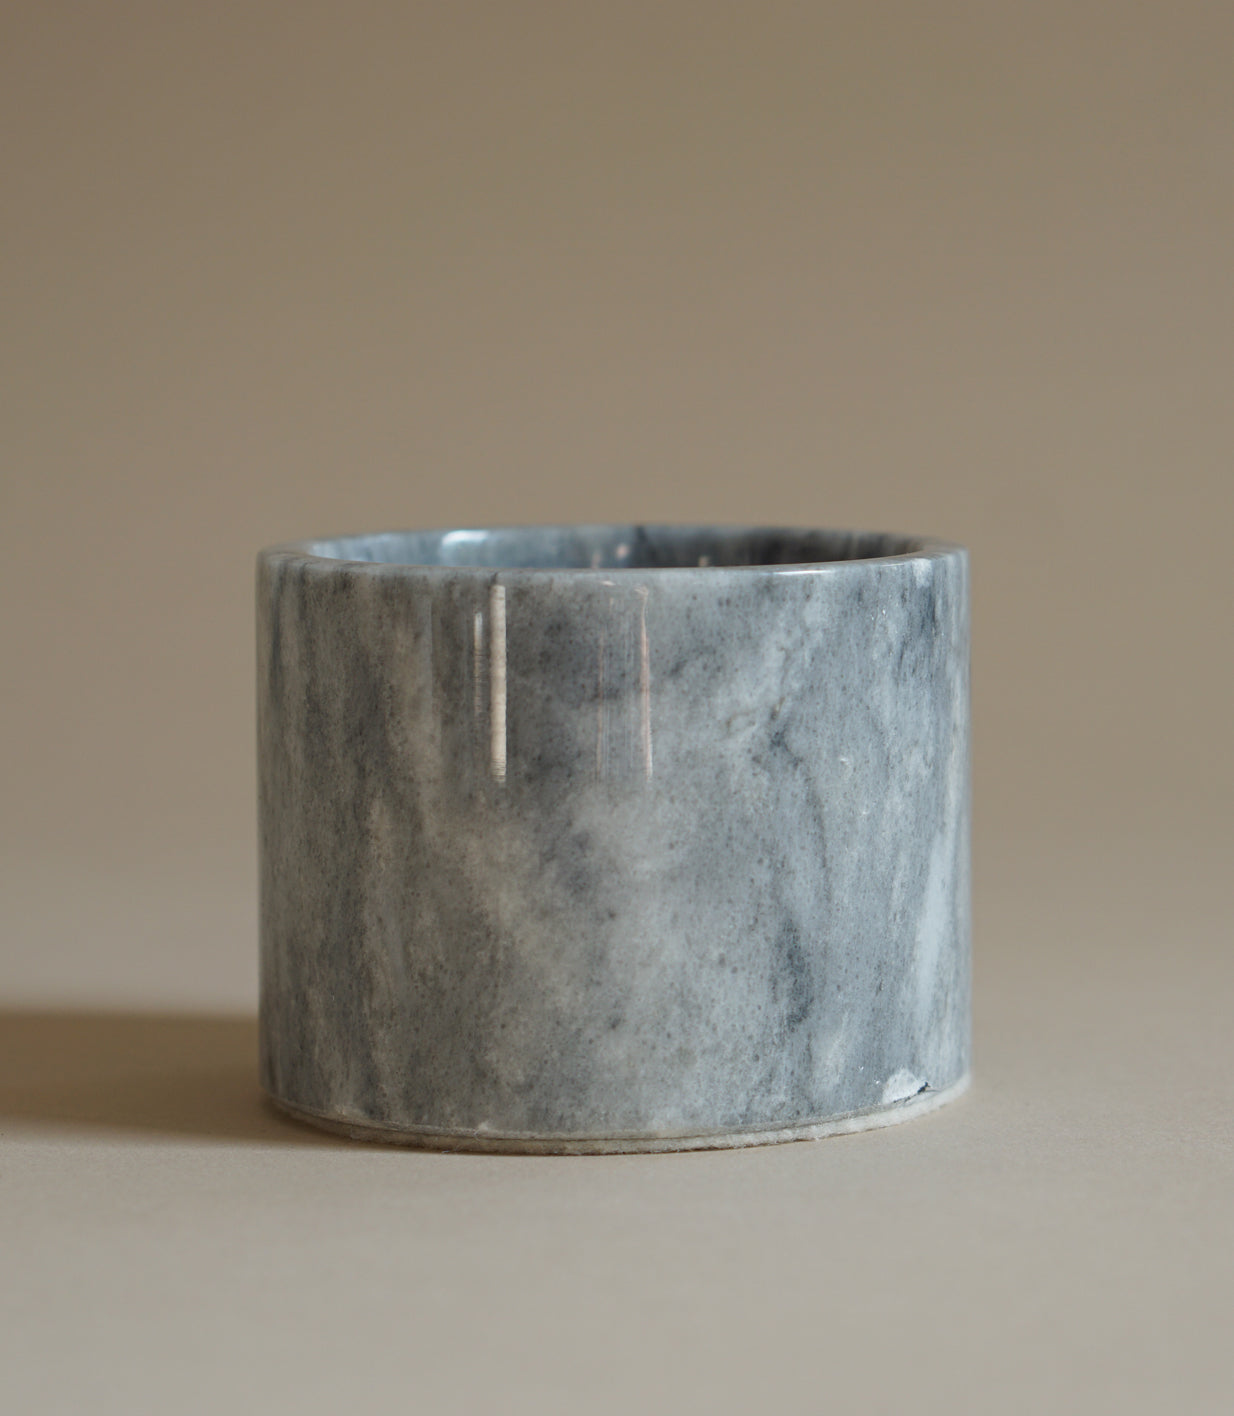 002 ROOTED INCENSE HOLDER IN GRAY - MAAARI